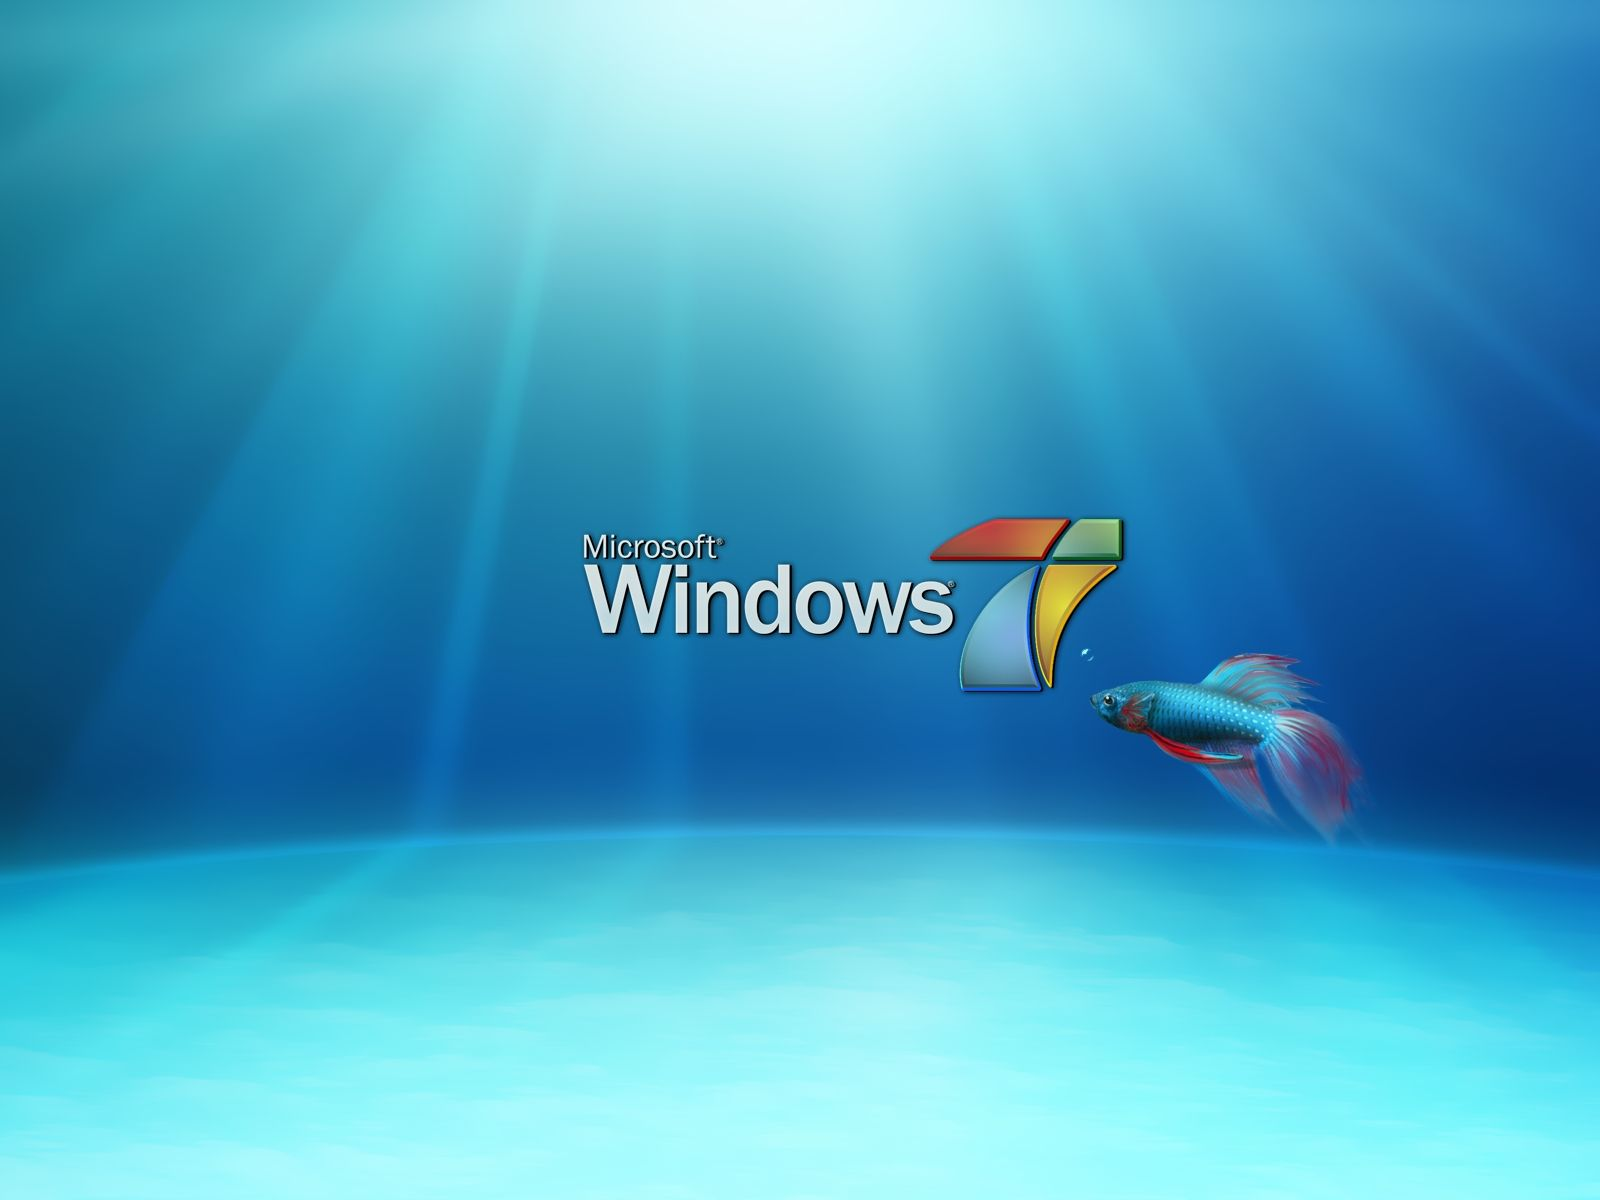 Fish Windows 7 Desktop Wallpaper Ideas for the House